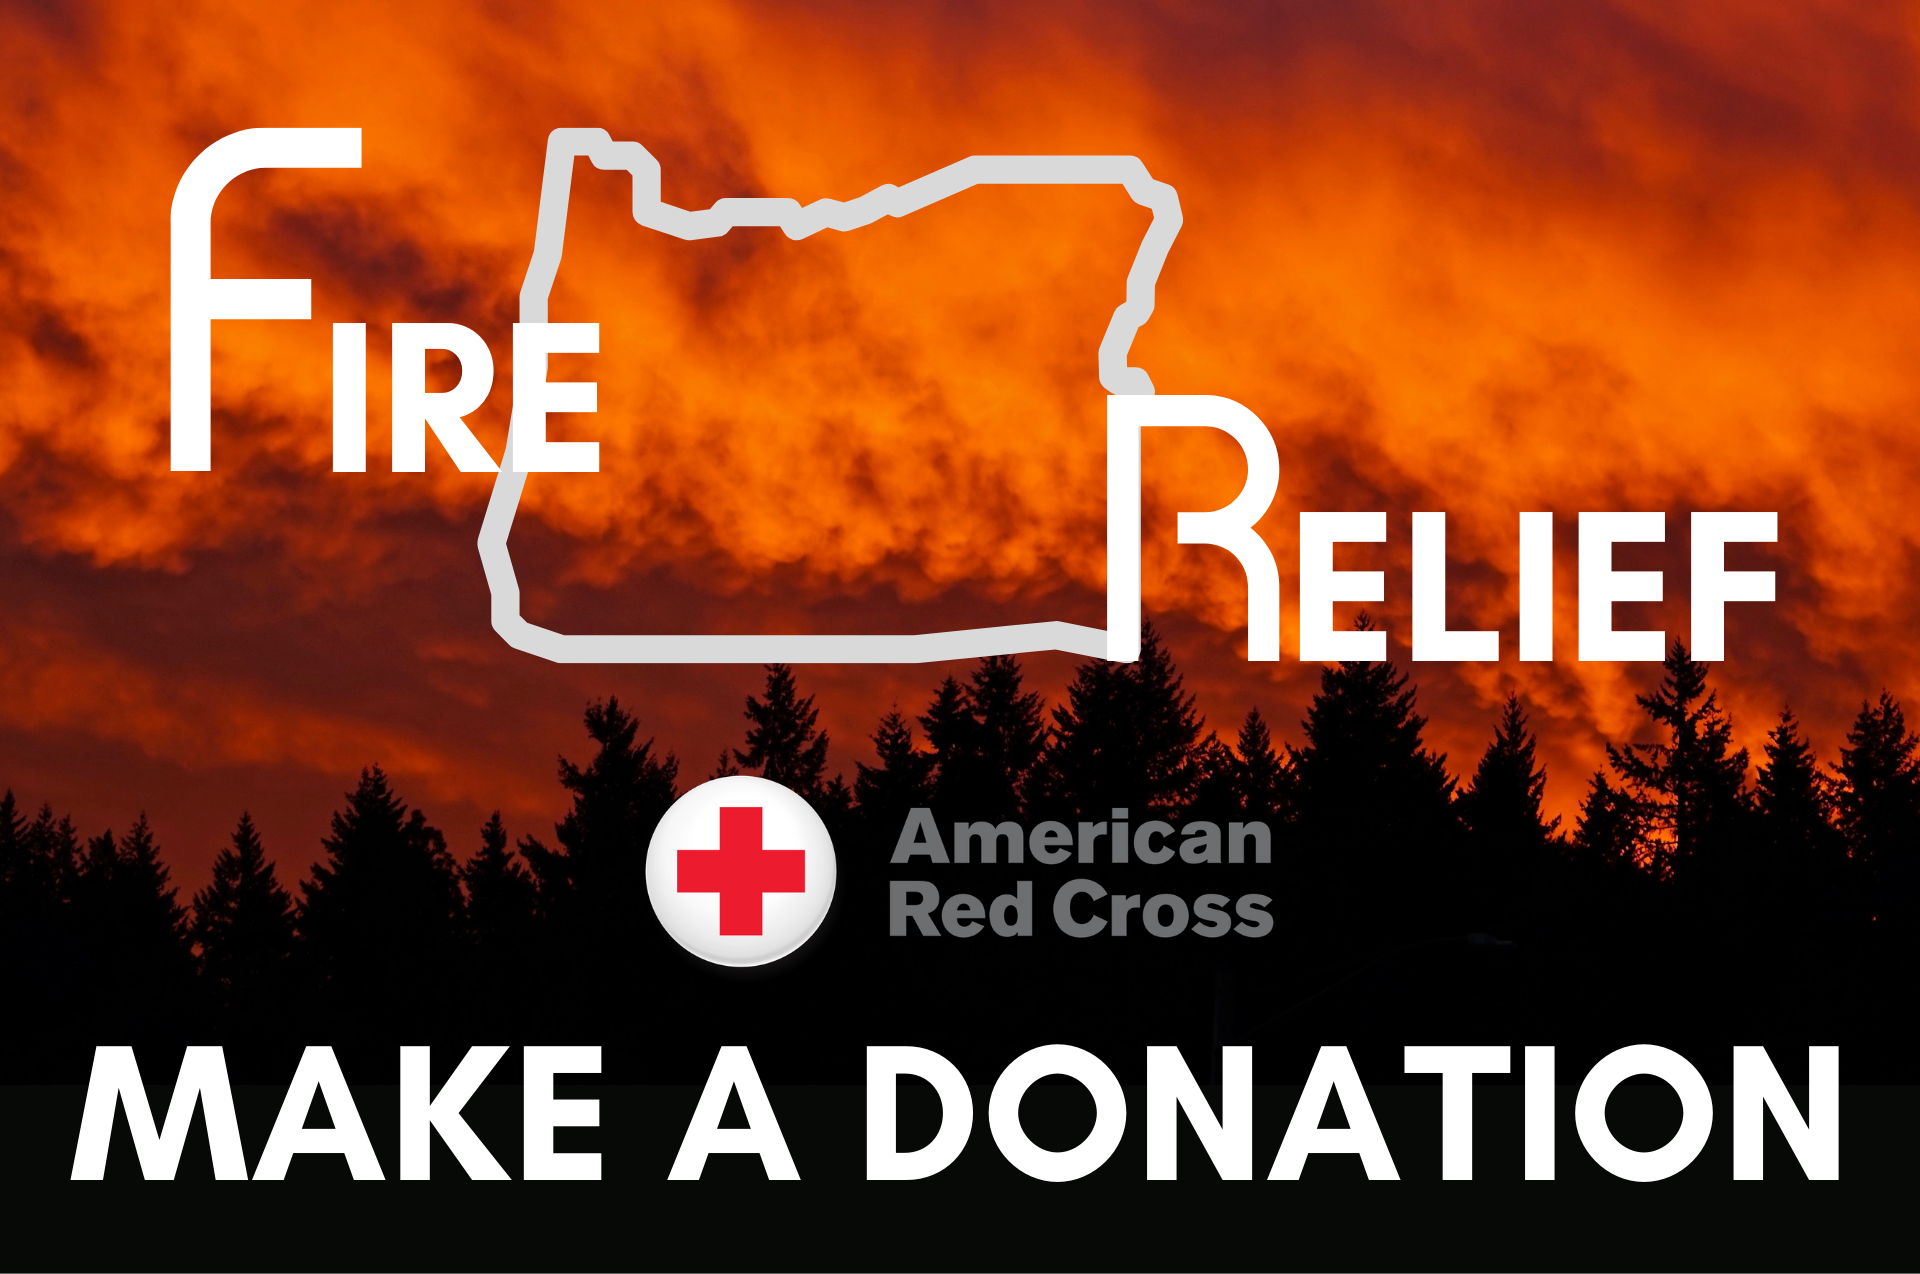 Fire Relief American Red Cross Fundraiser